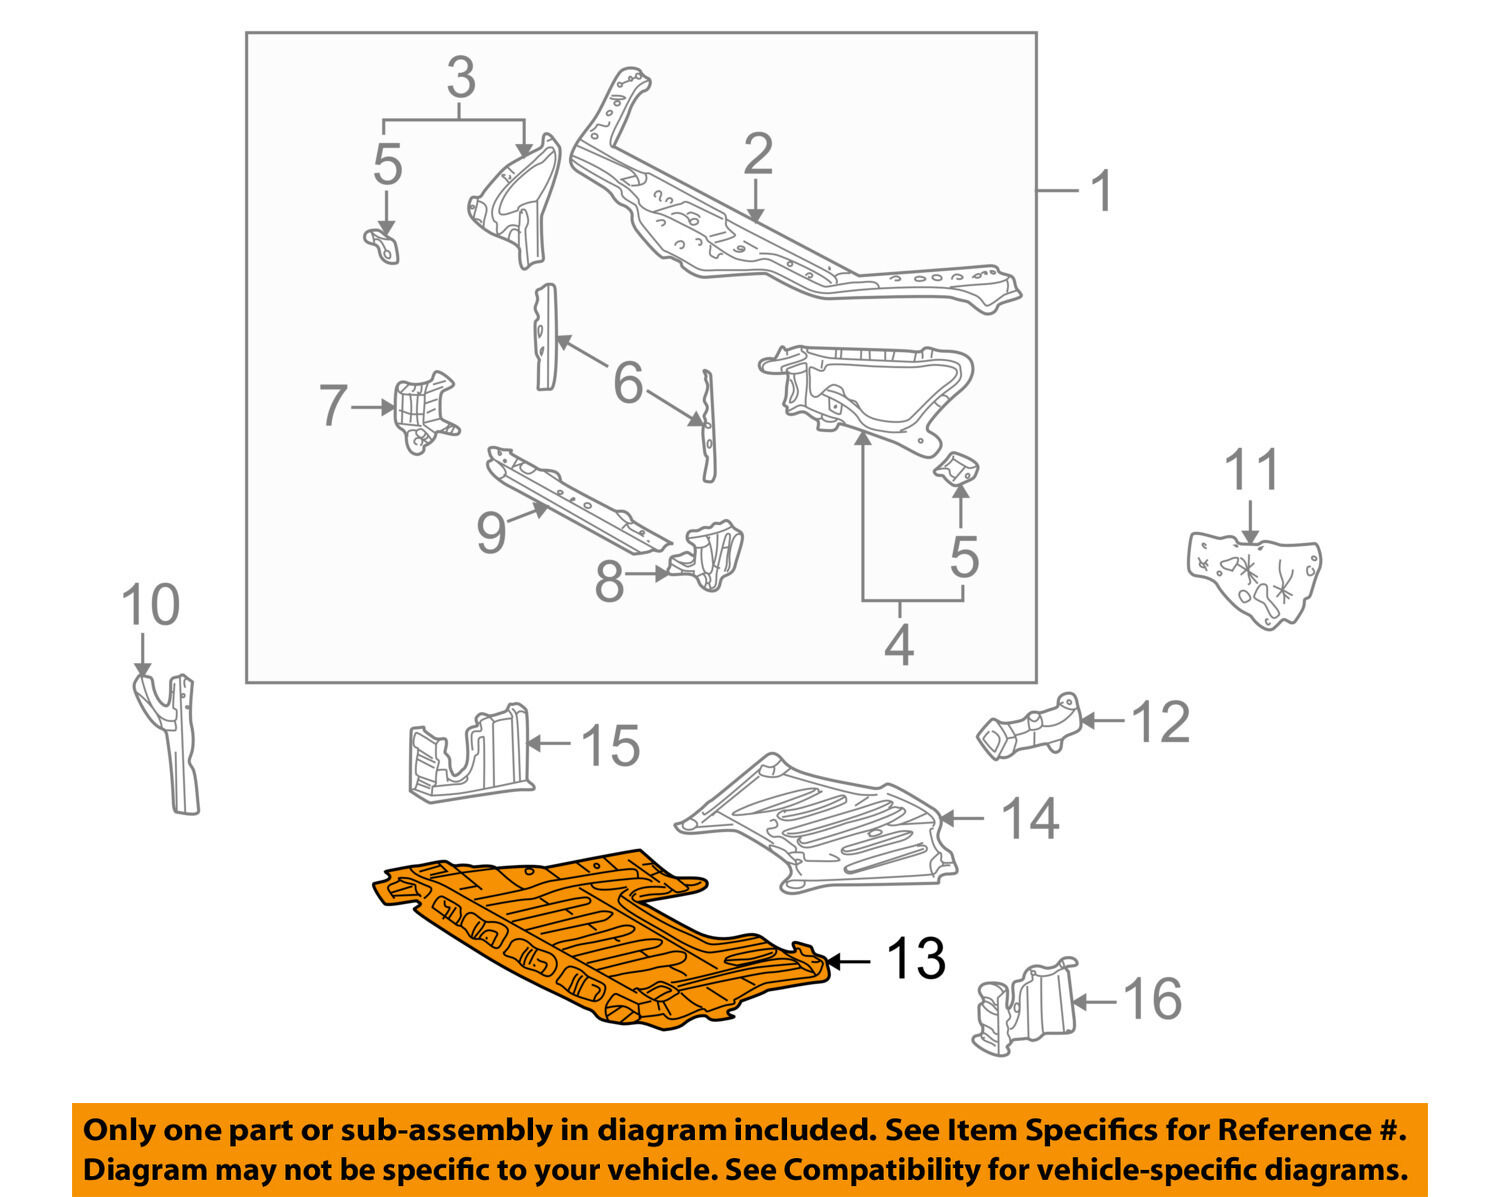 Lexus Toyota Oem Sc430 Under Radiator Engine Cover Splash Shield Diagrams 1 Of 2only Available